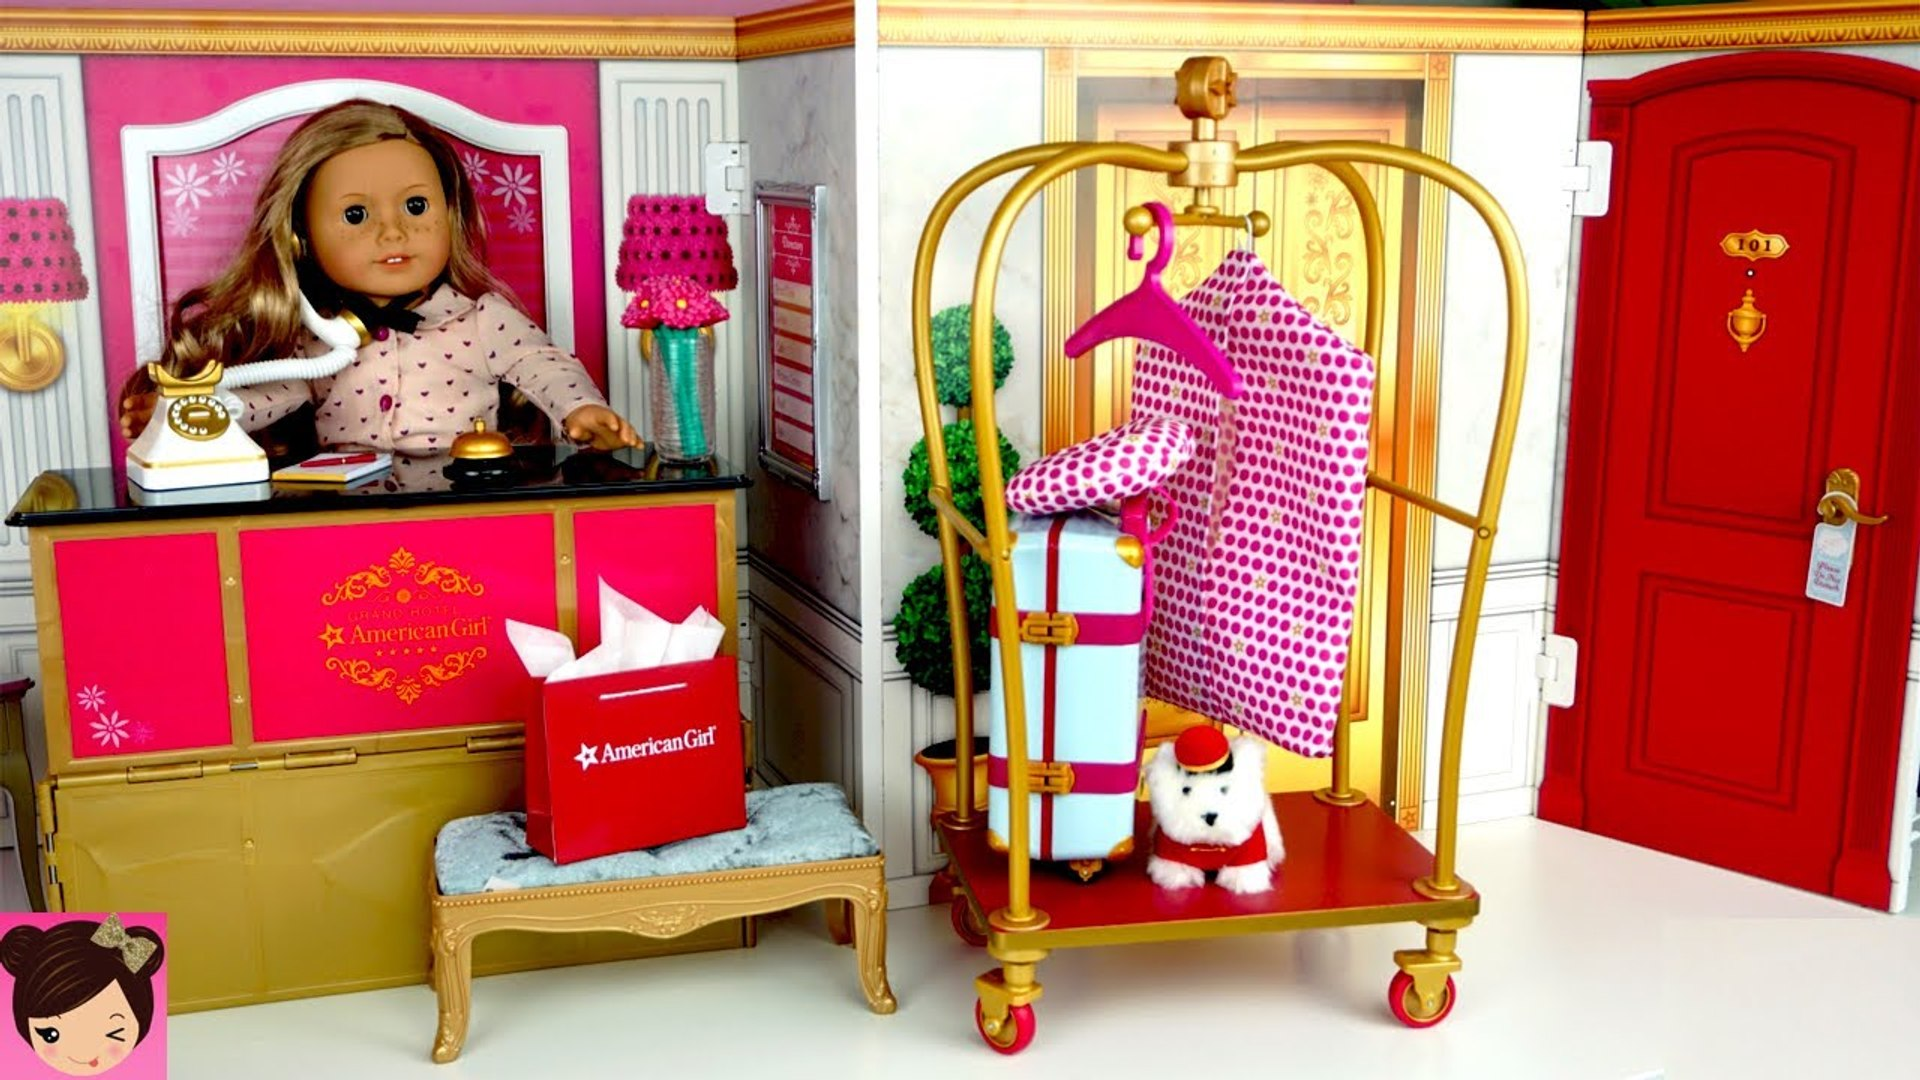 Toy Hotel Play Set - Doll Bedroom Bathroom - American Girl Grand Hotel Full Collection